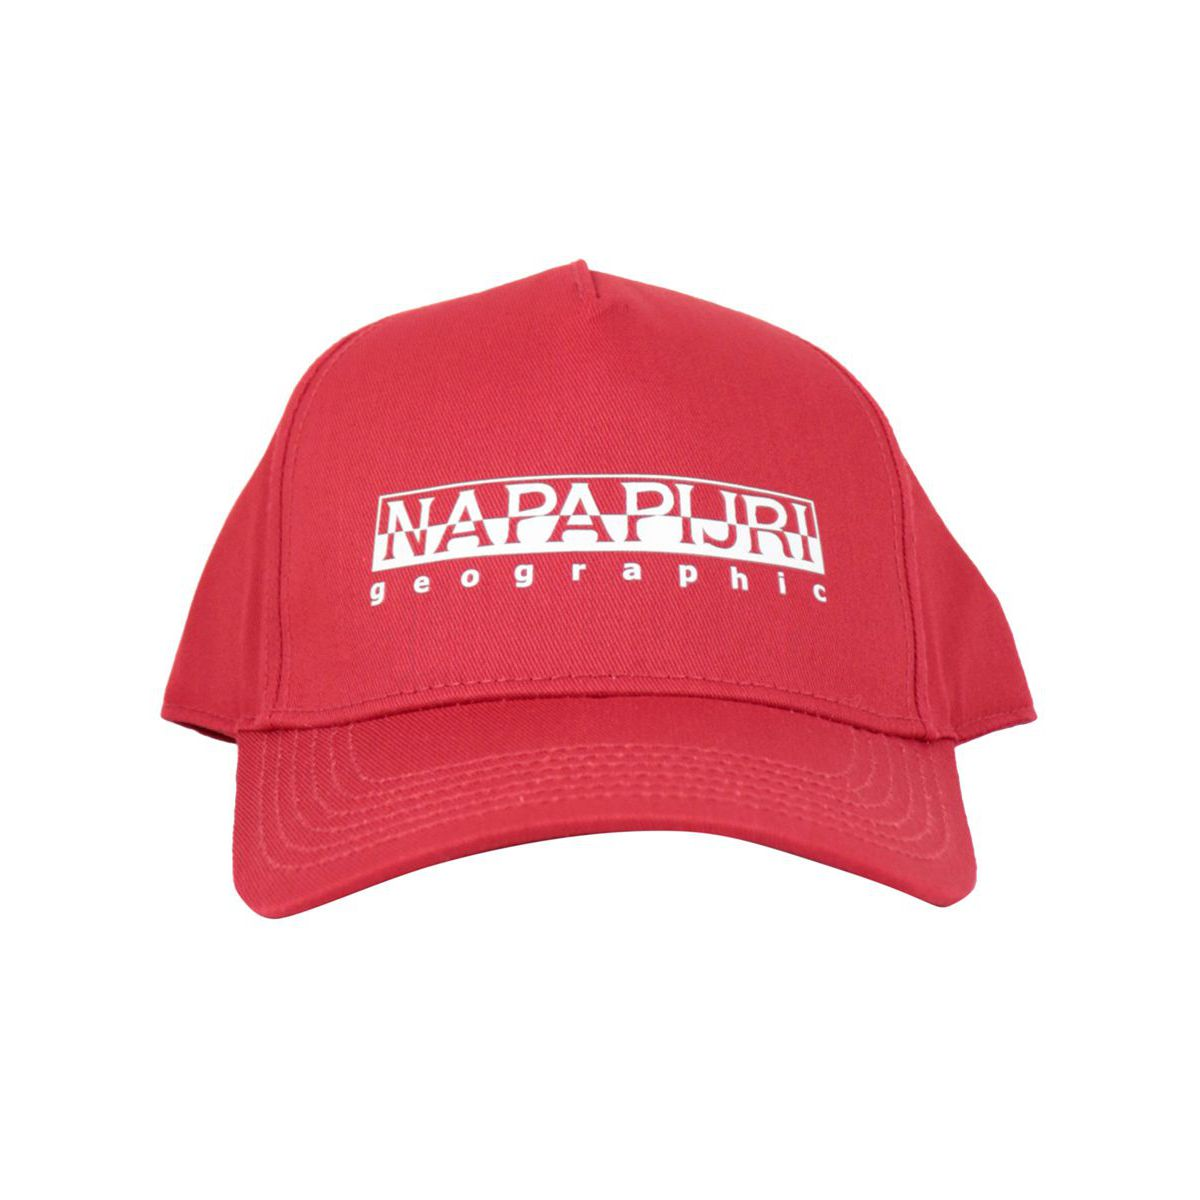 Cotton blend visor hat with printed logo Red NAPAPIJRI